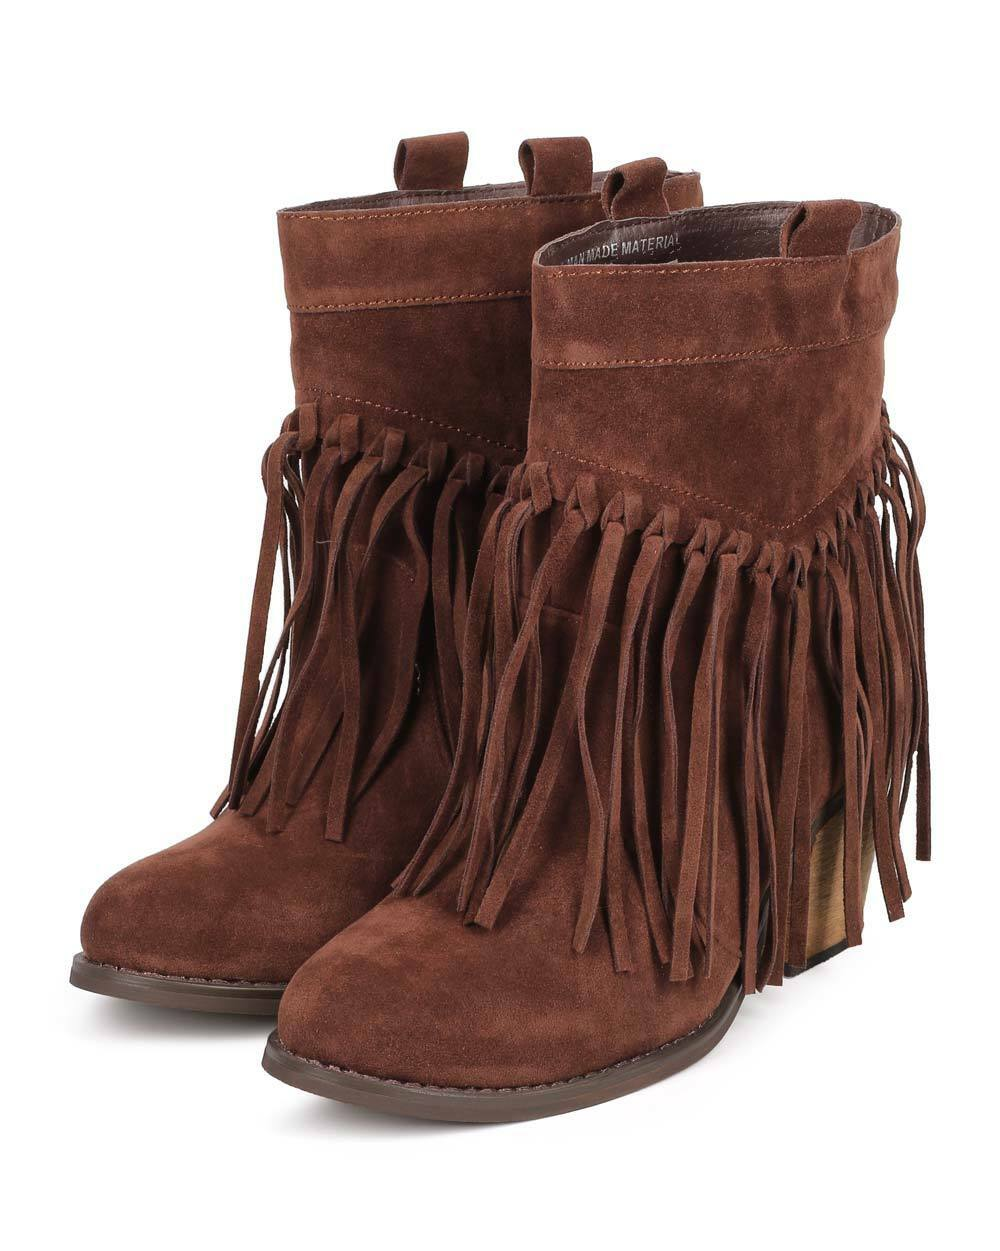 New Women Bumper Ranch-01 Suede Almond Toe Knotted Fringe Pull On Ankle Bootie